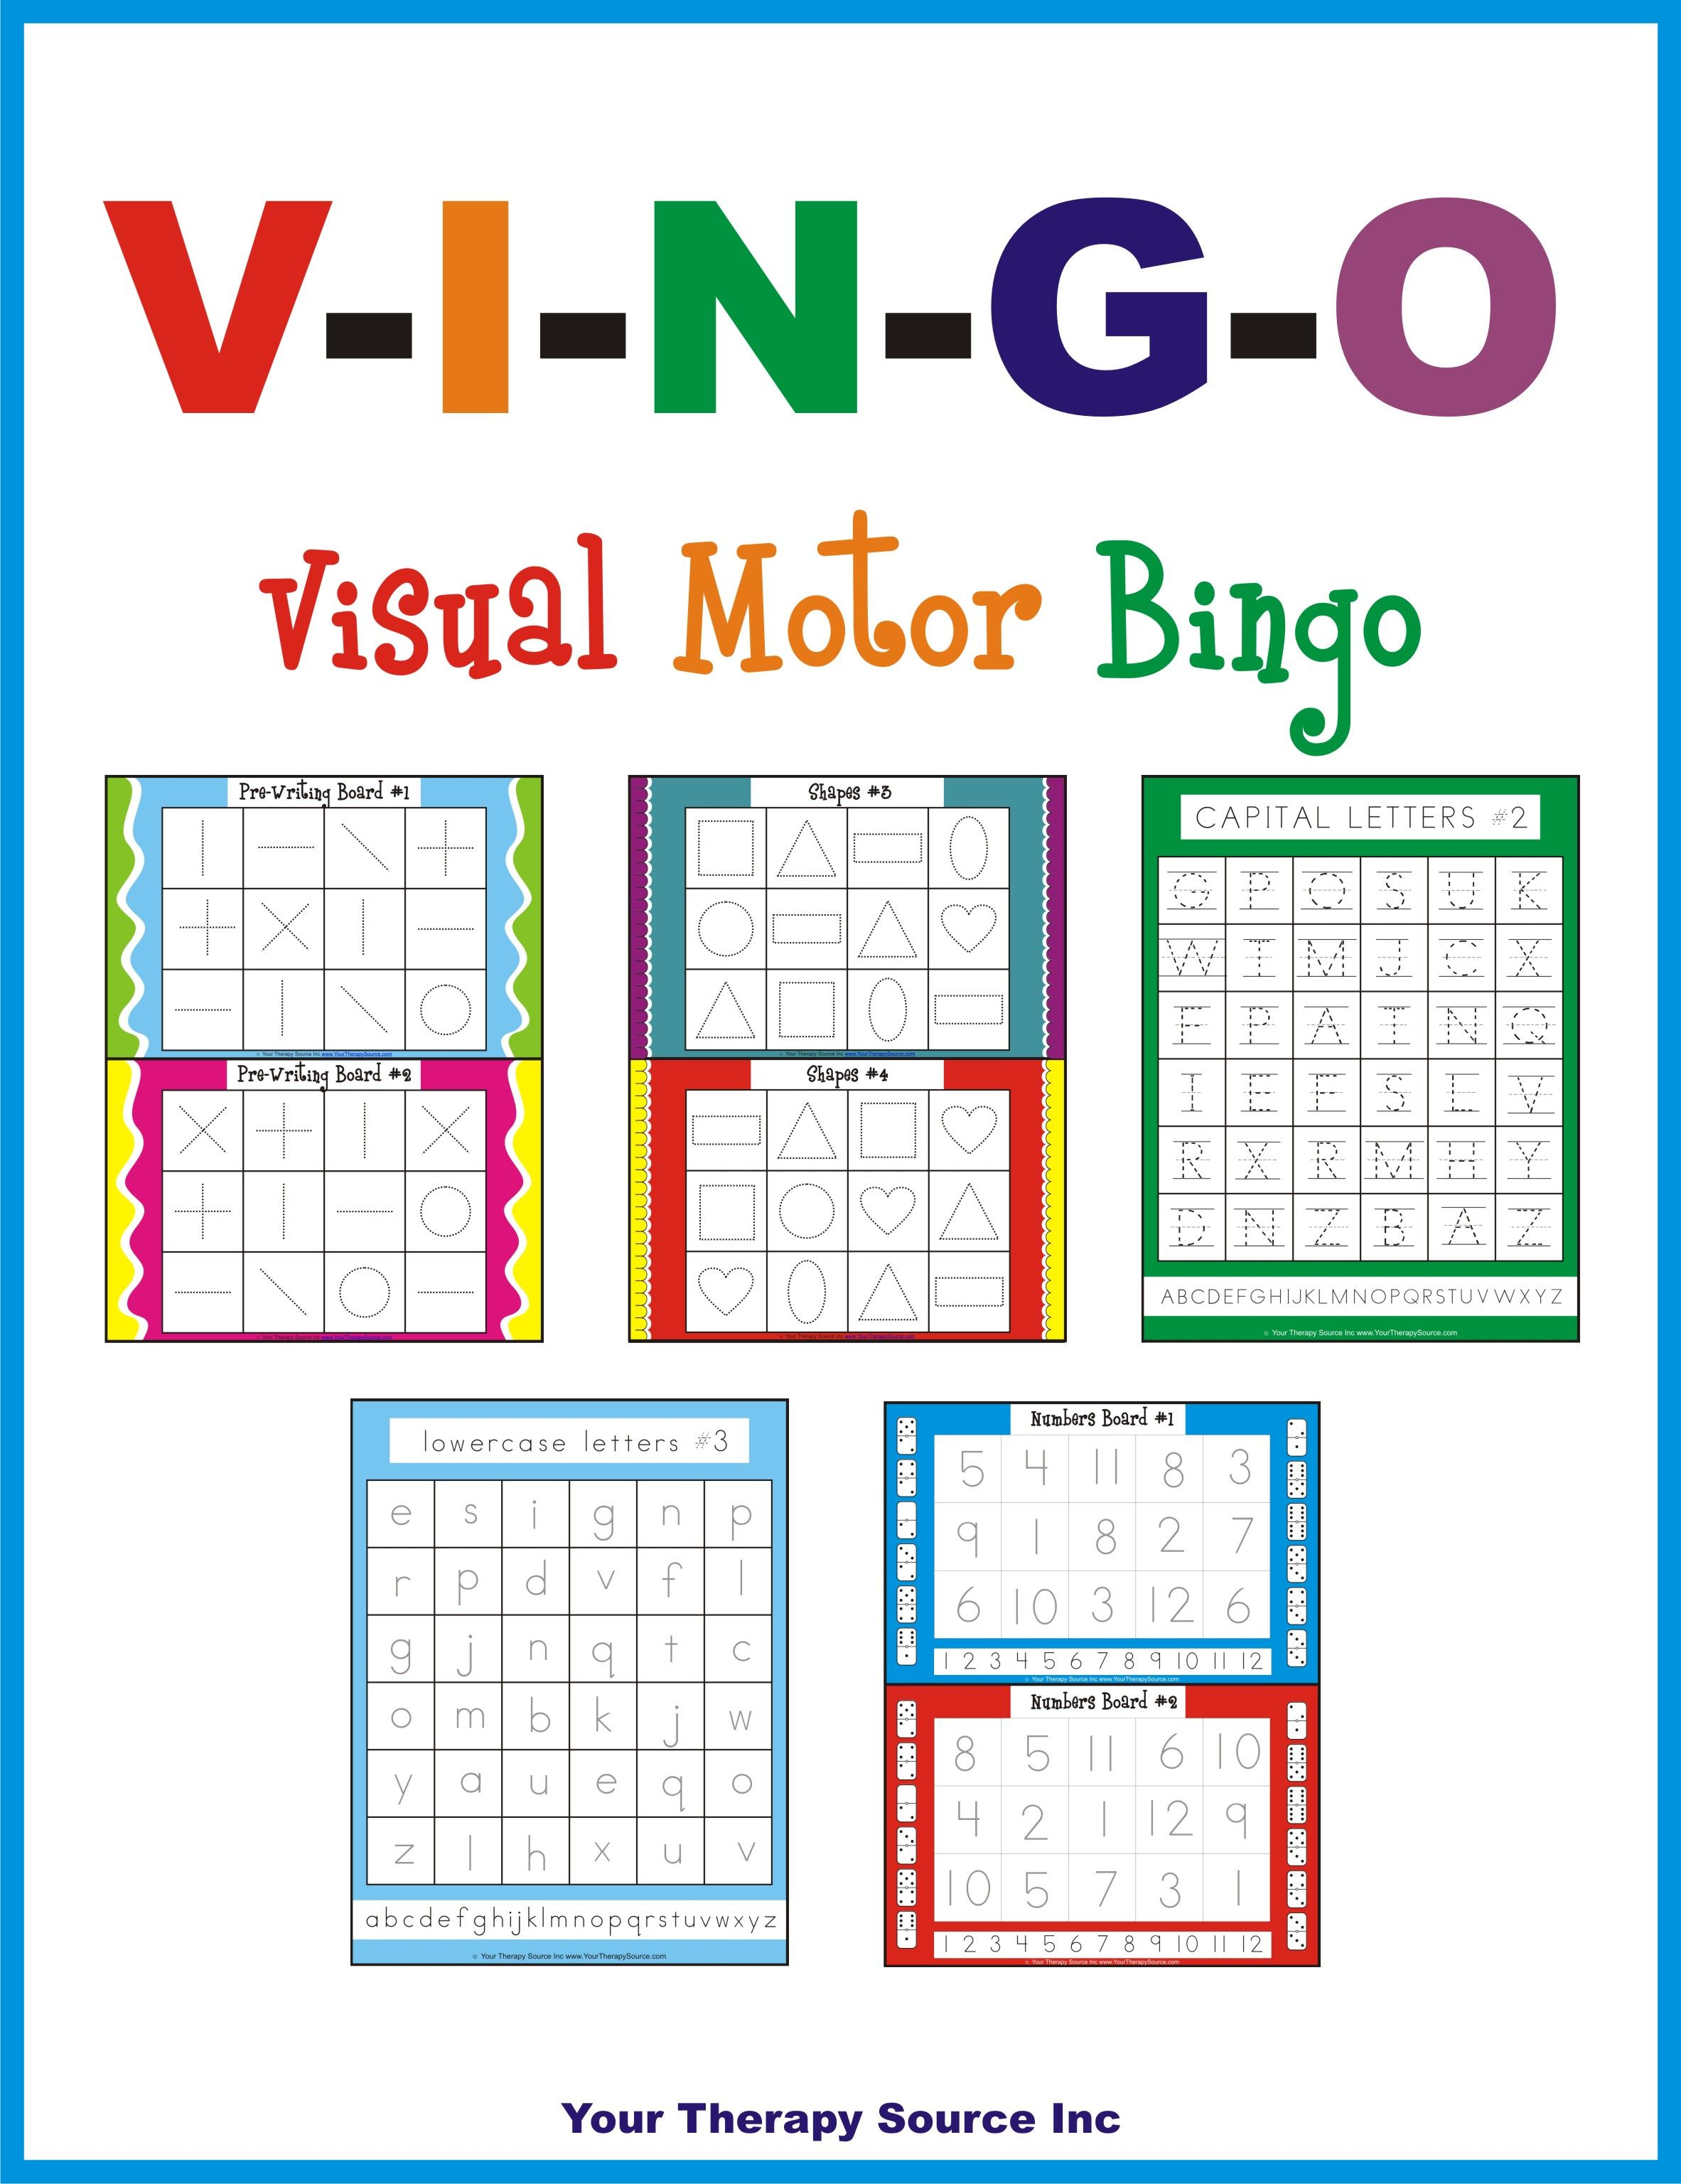 Summary Download Of 5 Different Bingo Games To Play From